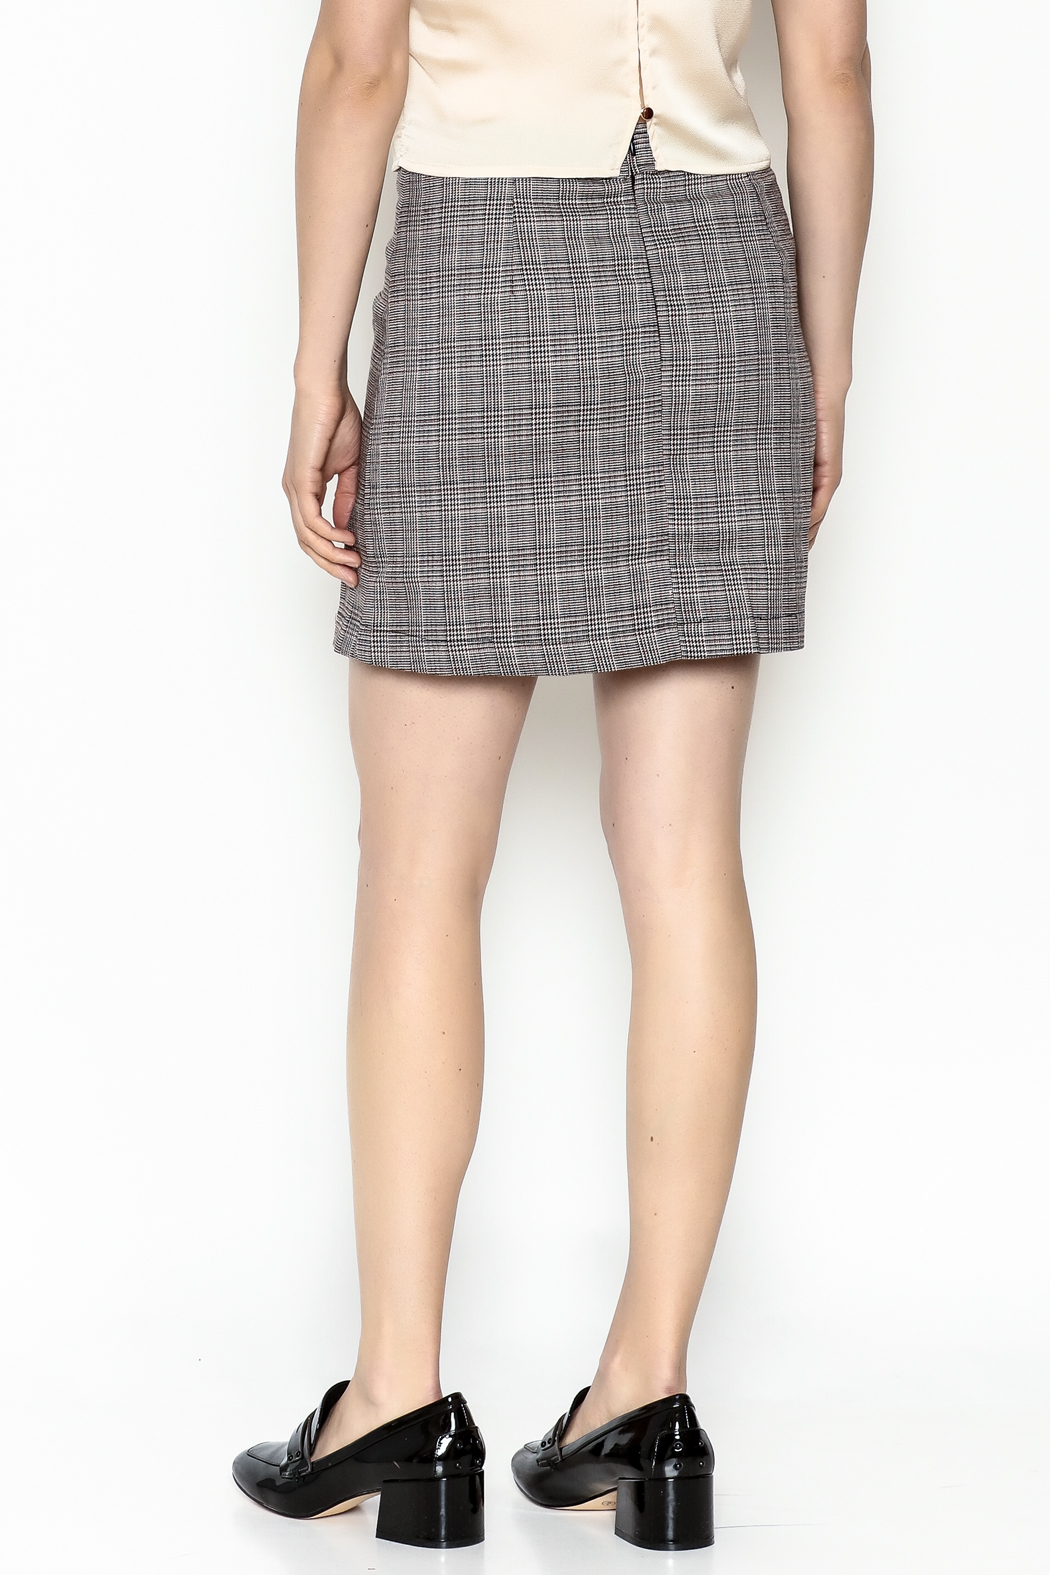 Very J Plaid Skirt - Back Cropped Image